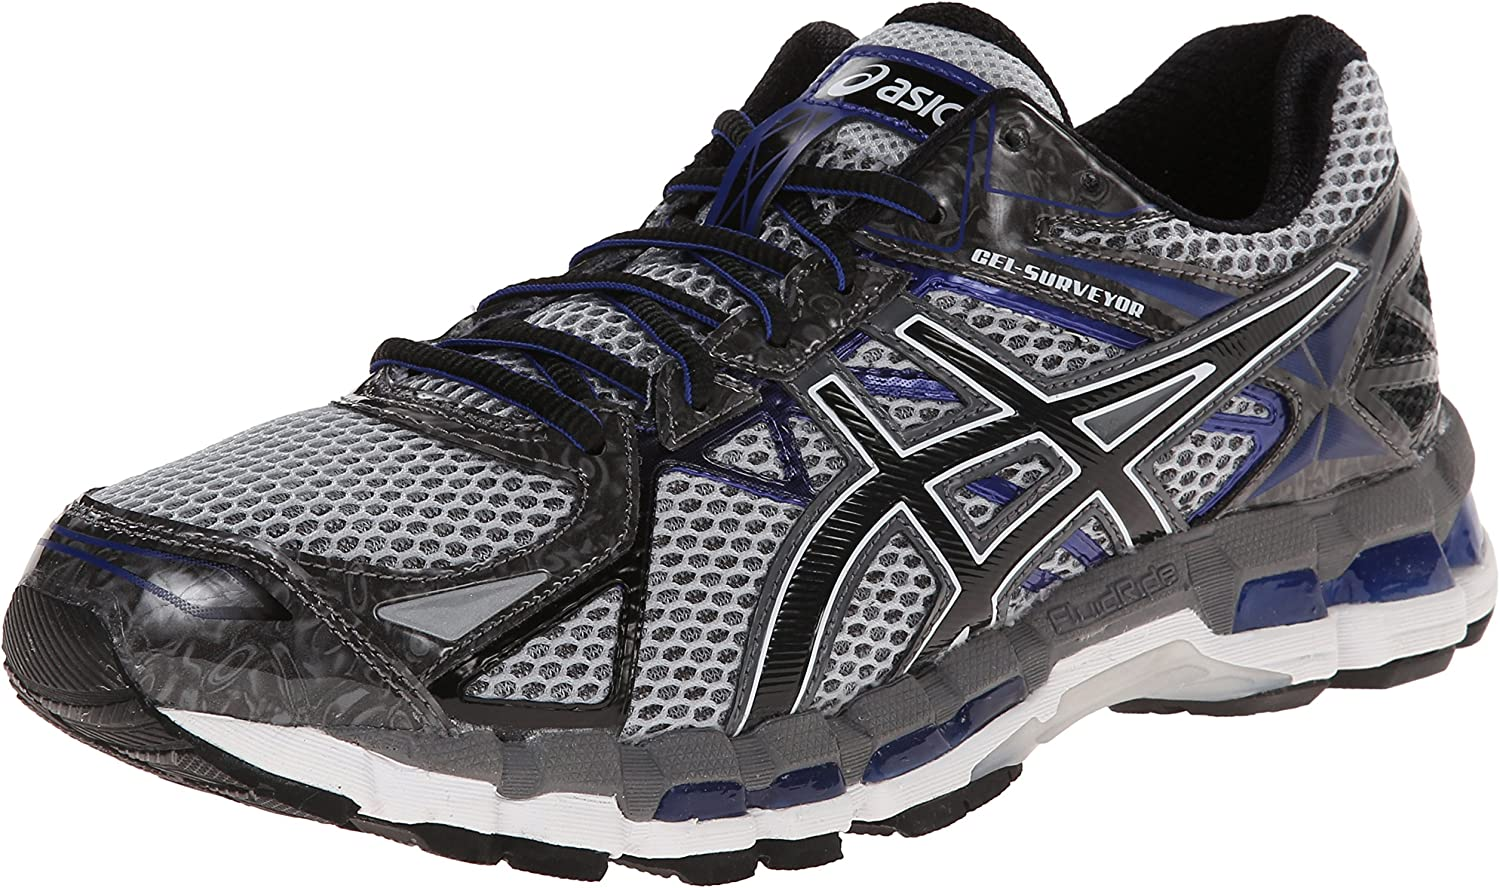 ASICS Men's GEL-Surveyor 3 Running Shoe